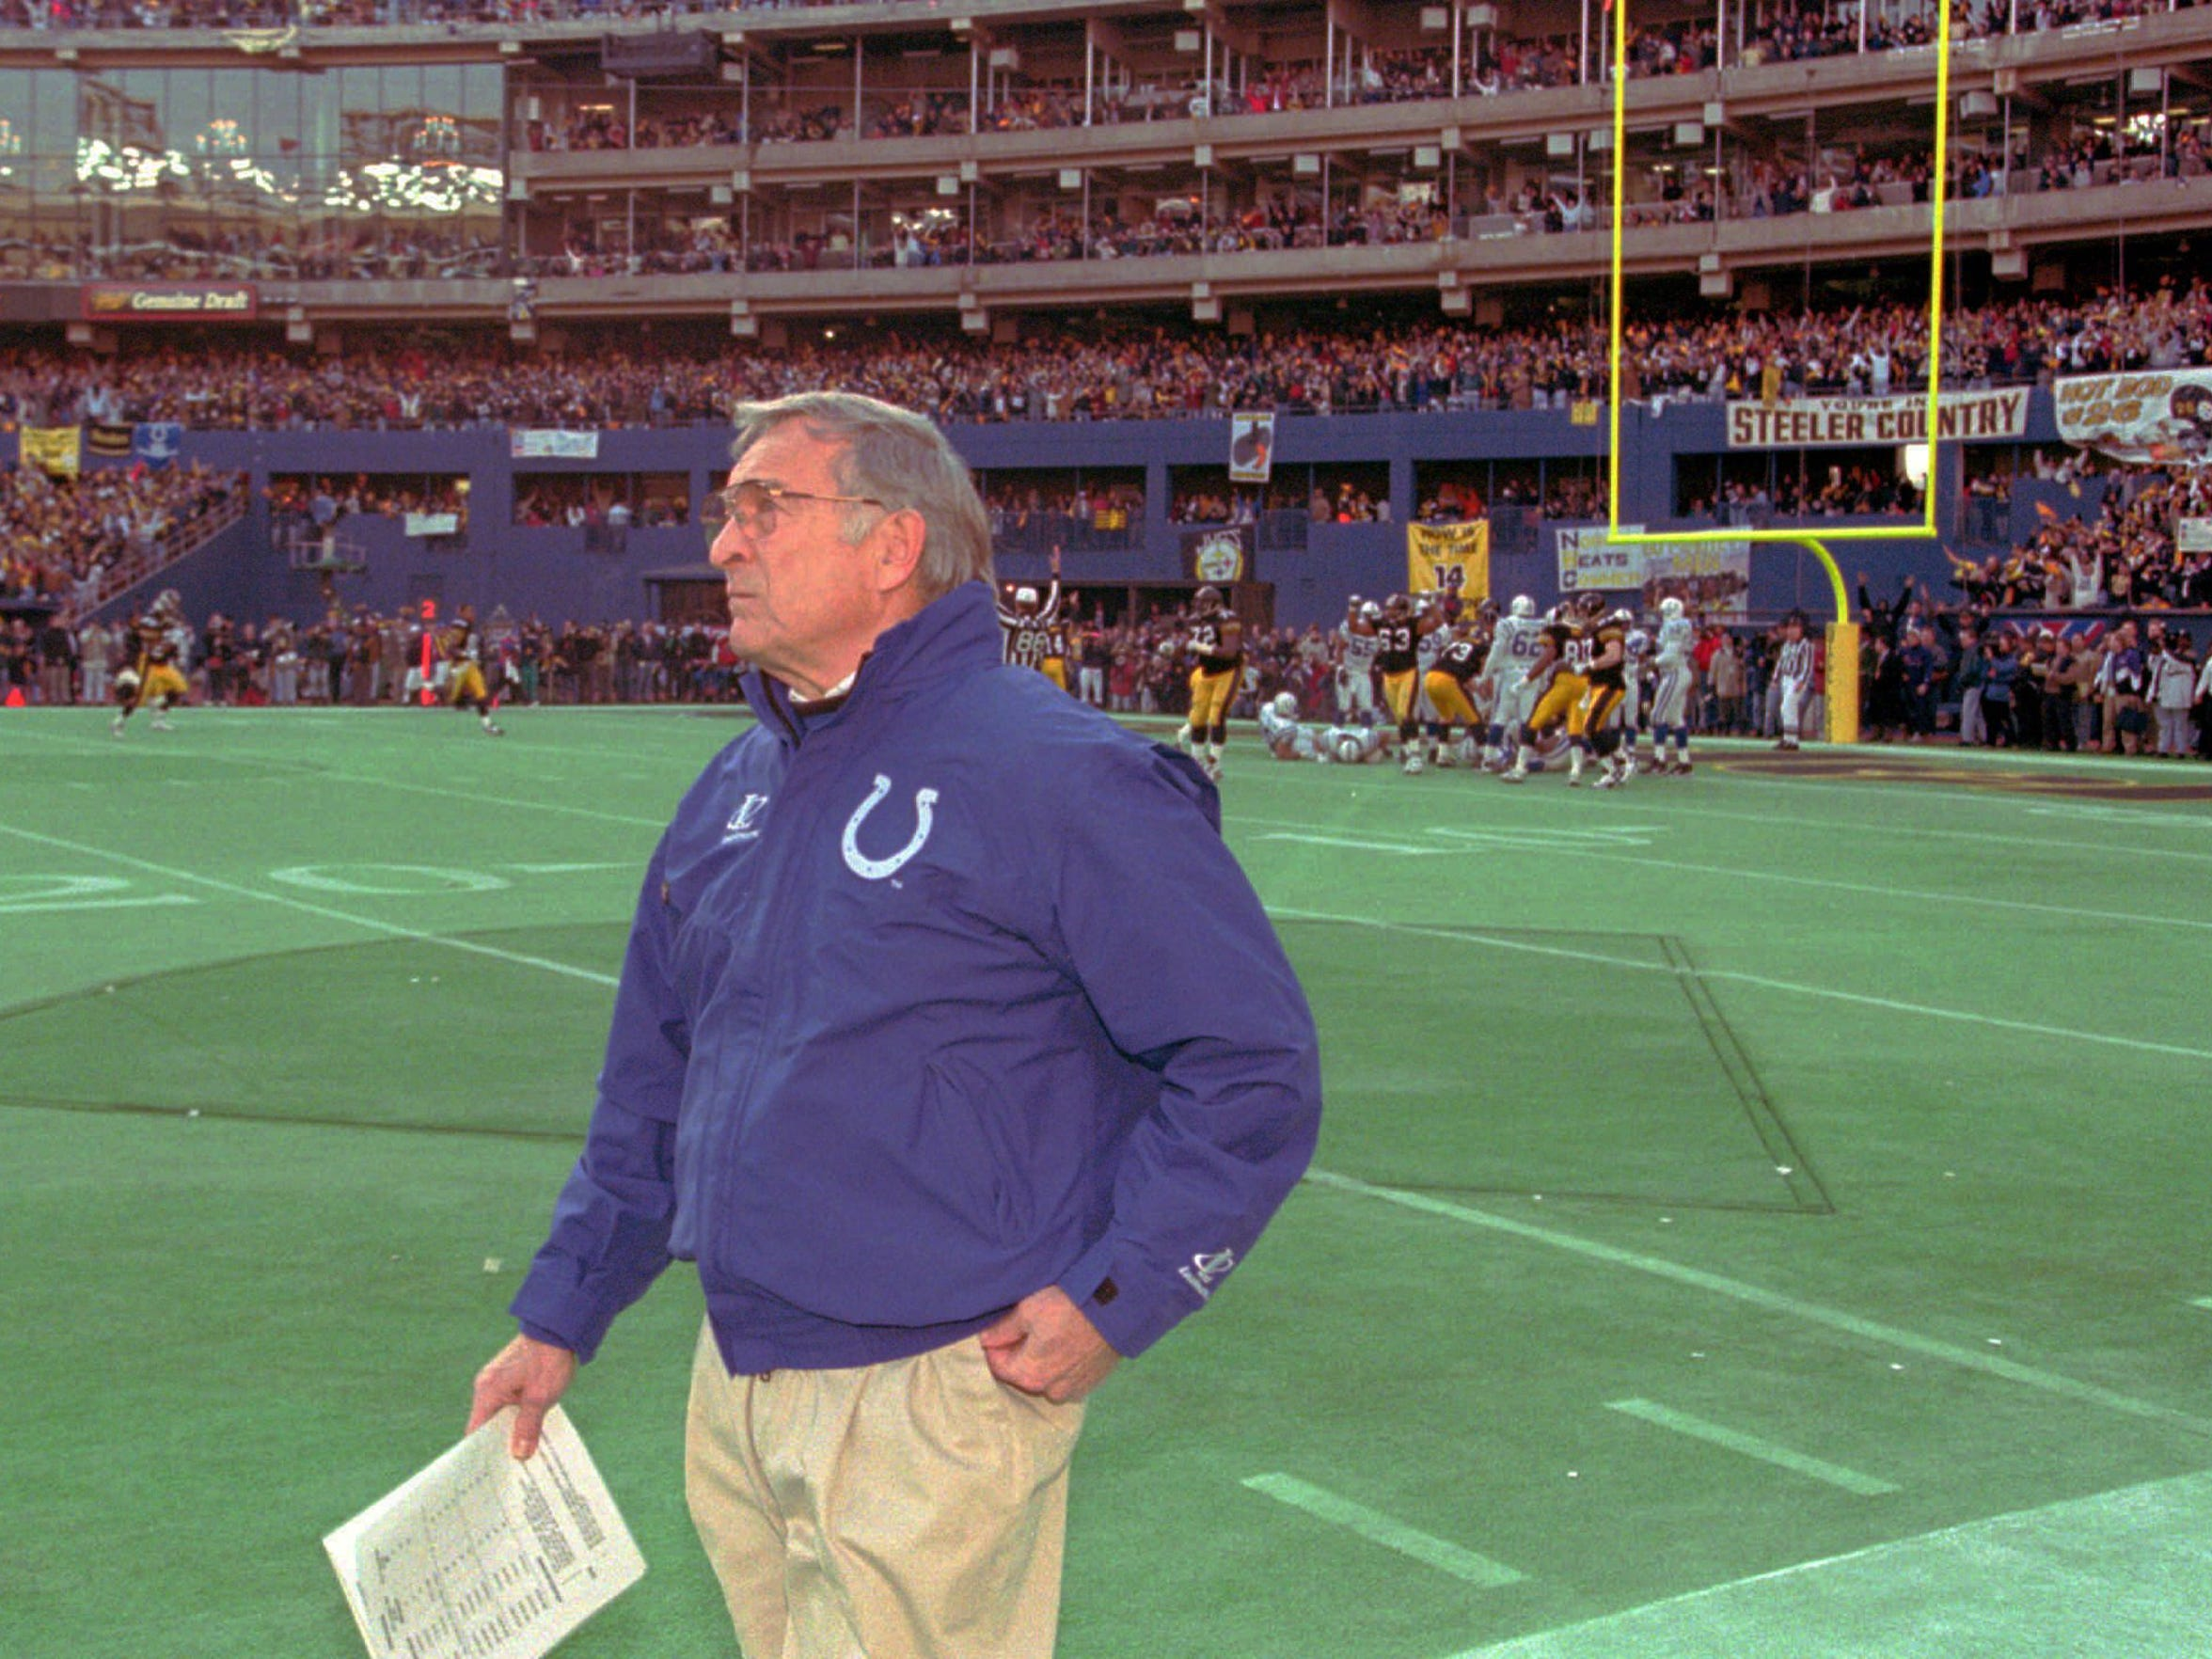 Colts coach Ted Marchibroda during the 1995 AFC Championship Game at Three Rivers Stadium in Pittsburgh.